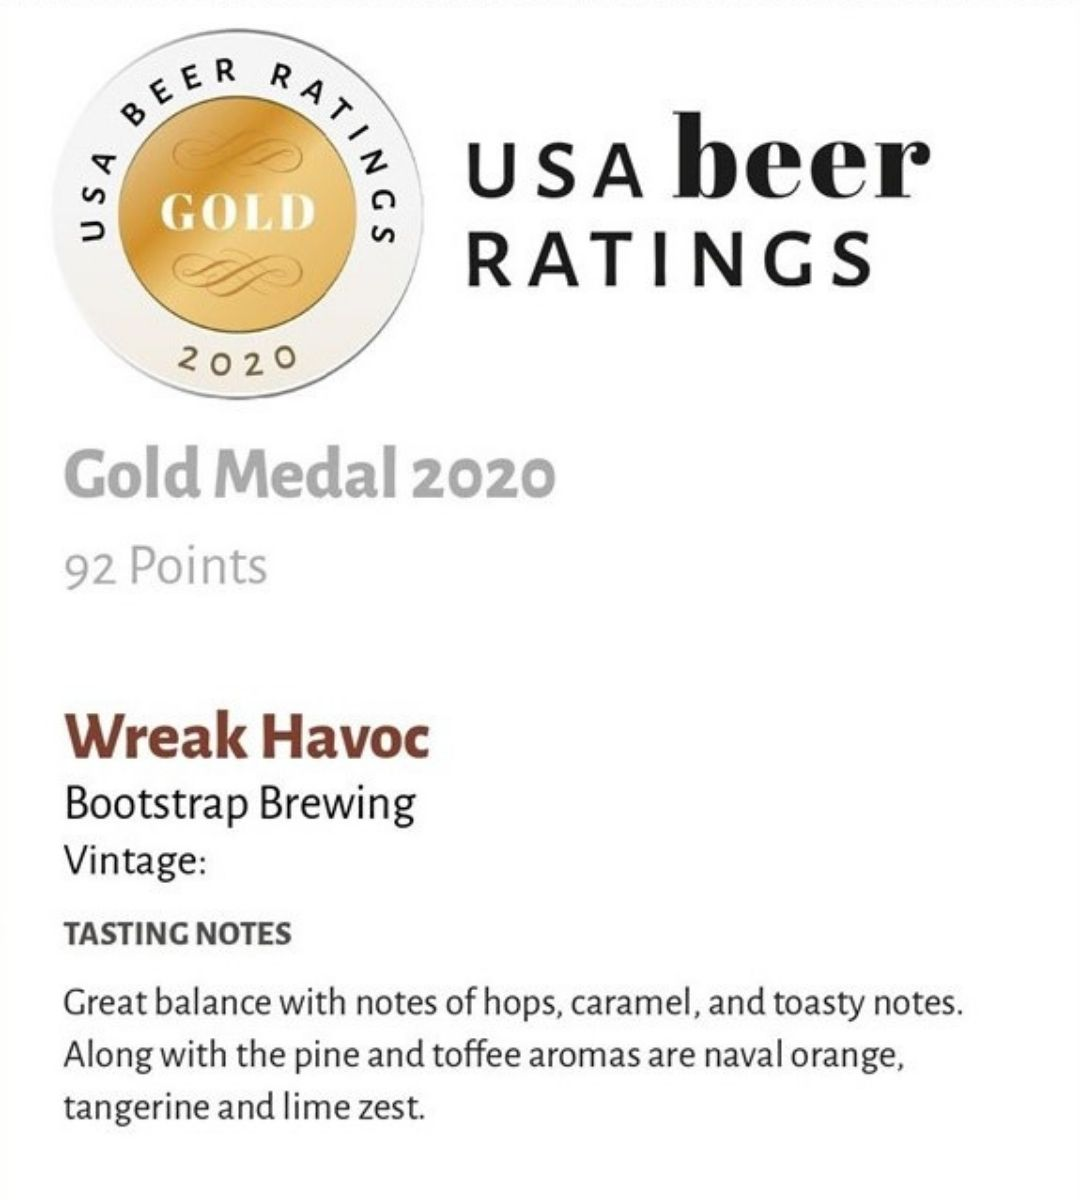 Wreak Havoc Gold Medal USA Beer Ratings